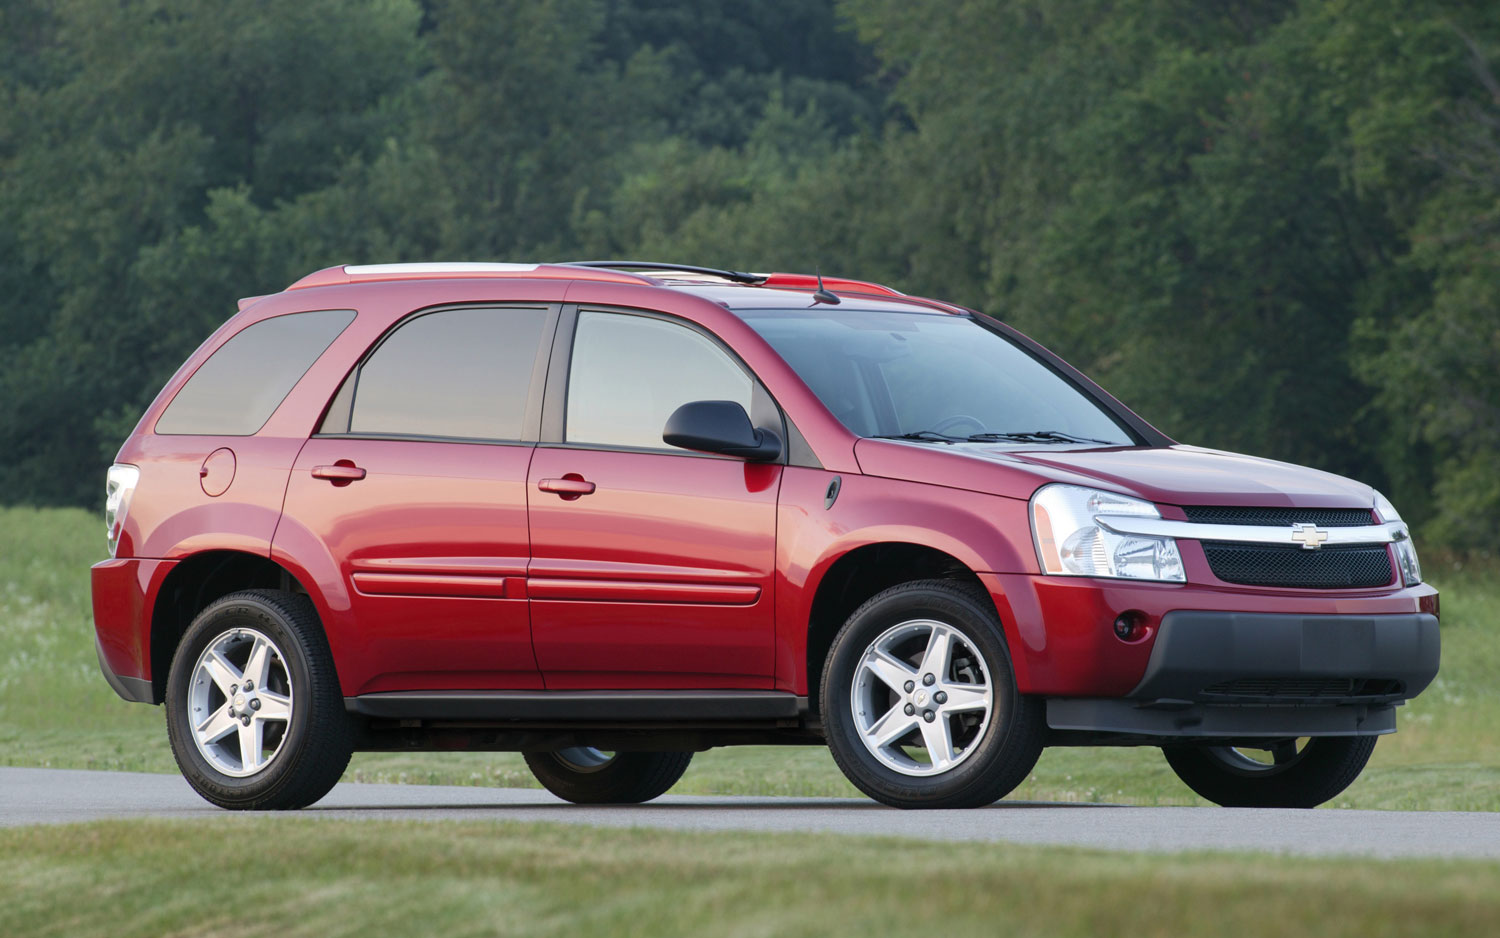 Chevrolet Equinox photo 11